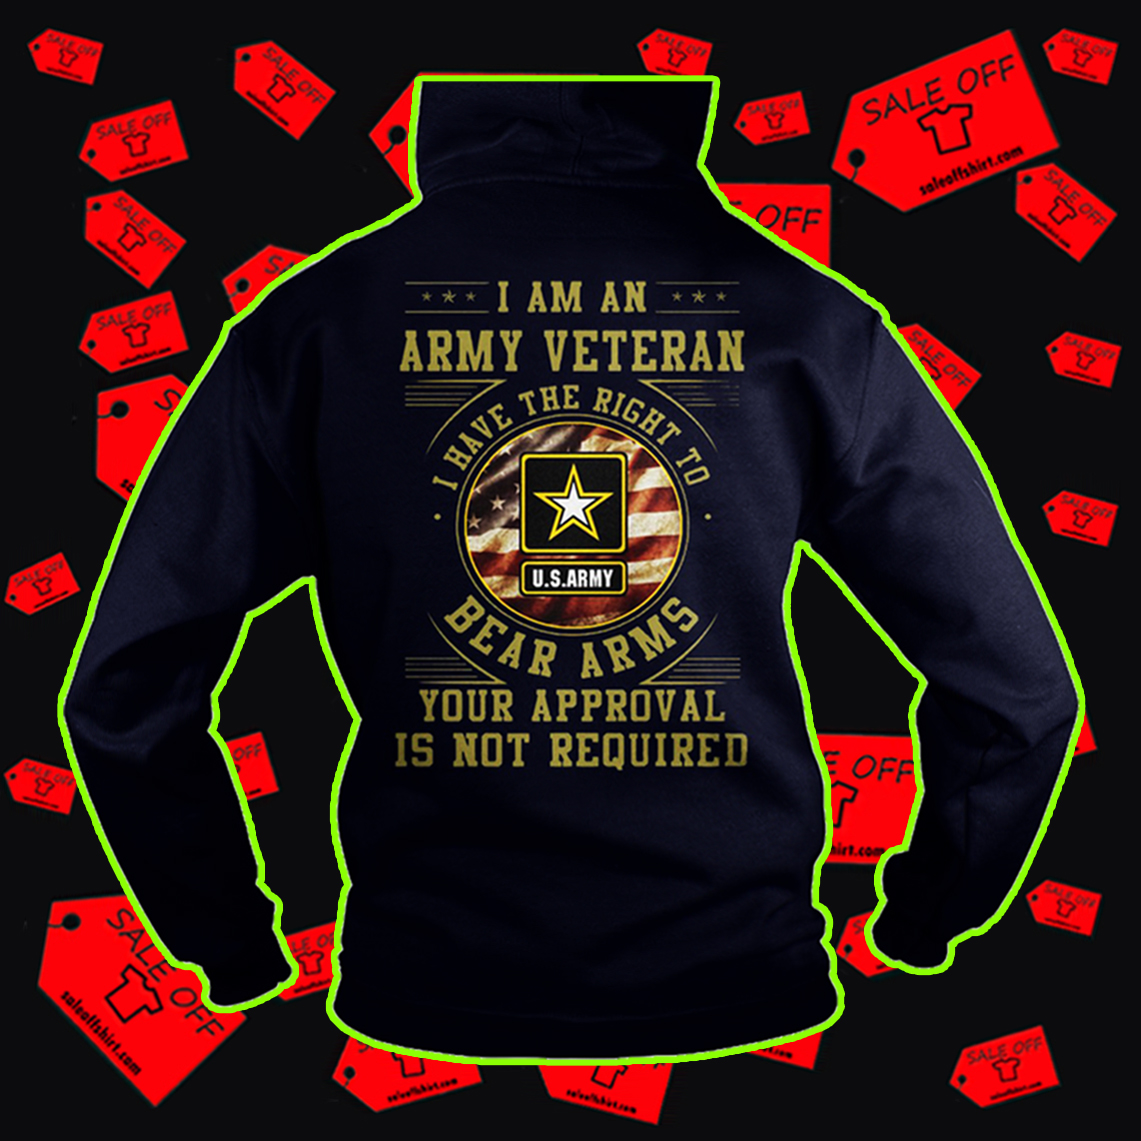 US Army I am an army veteran I have the right to bear arms hoodie